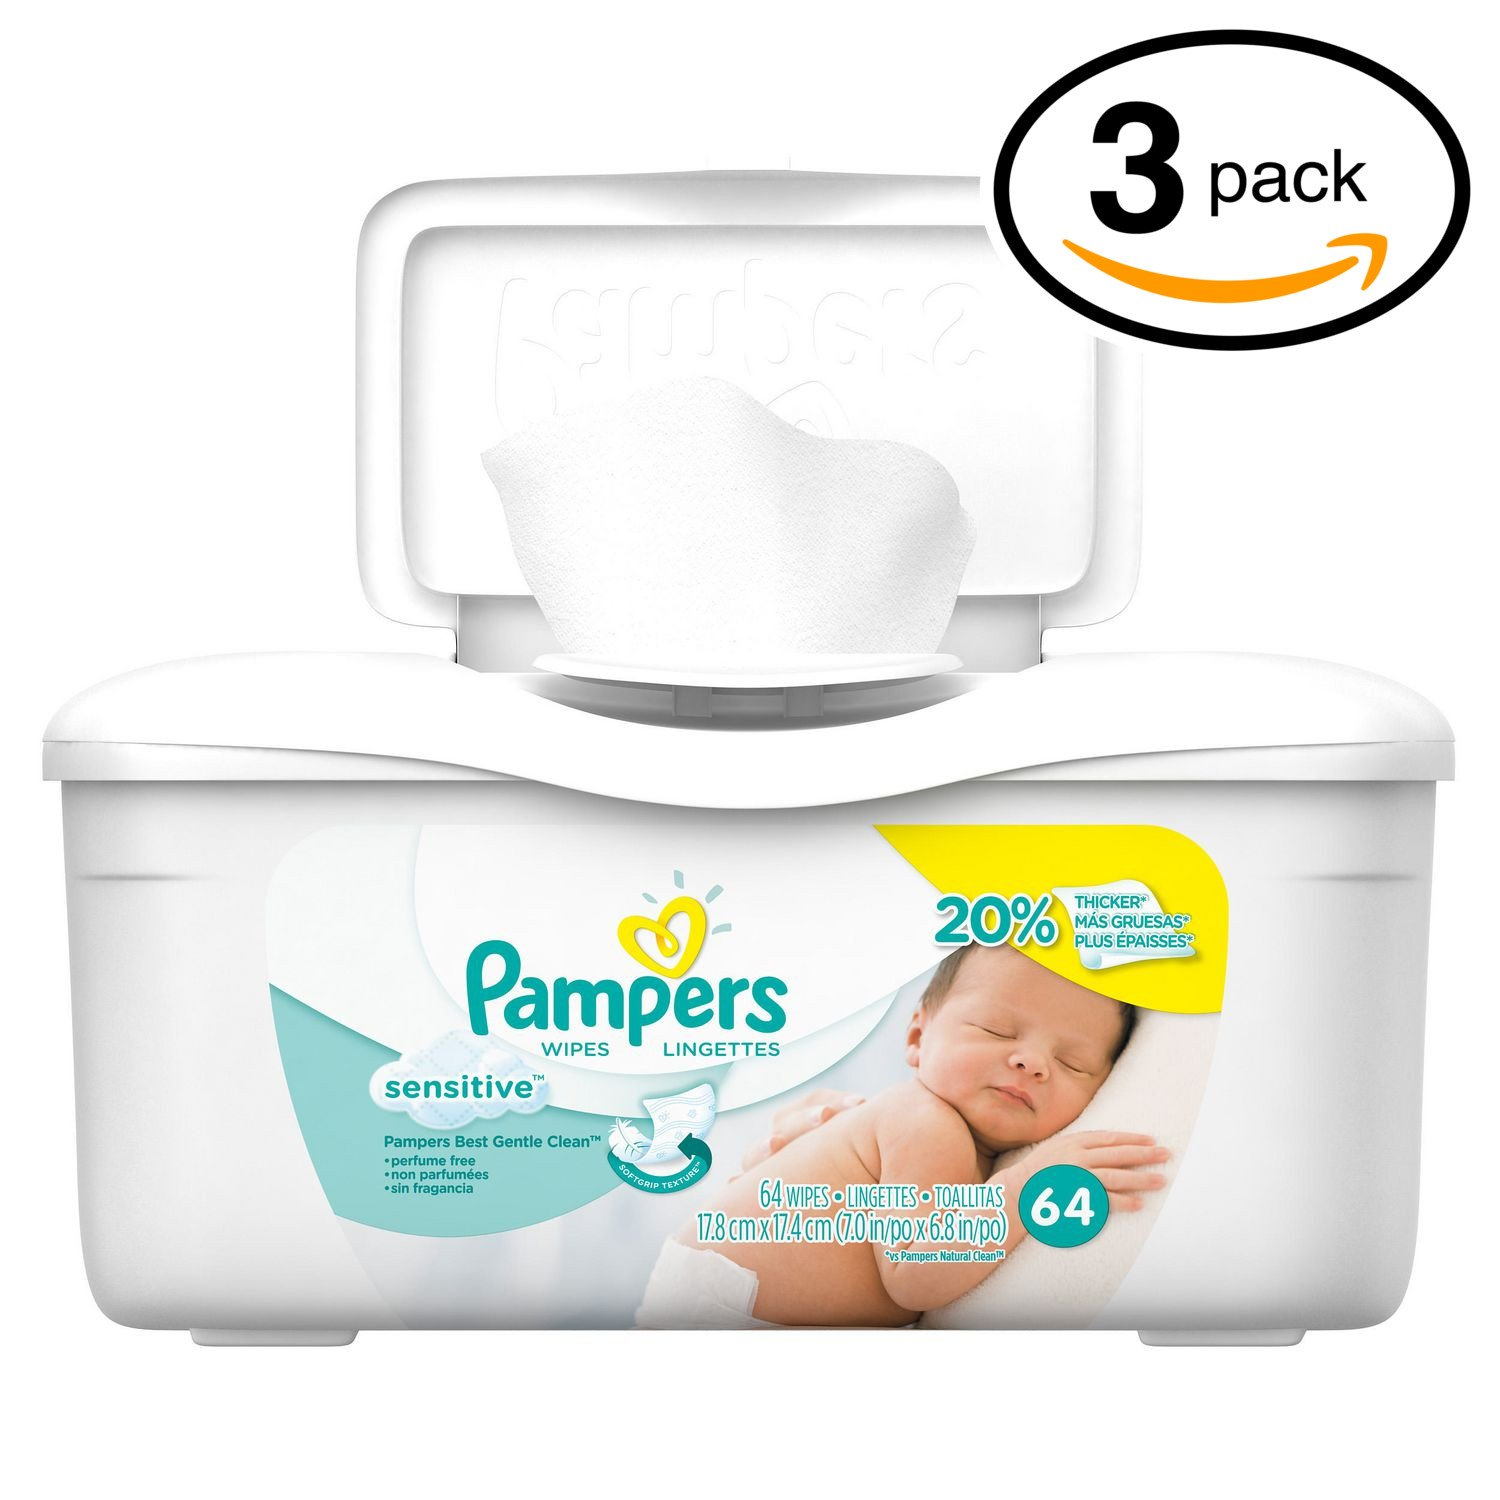 Amazon.com: Pampers Baby Wipes Tub, Sensitive, 64 Count (Pack of 3): Health & Personal Care